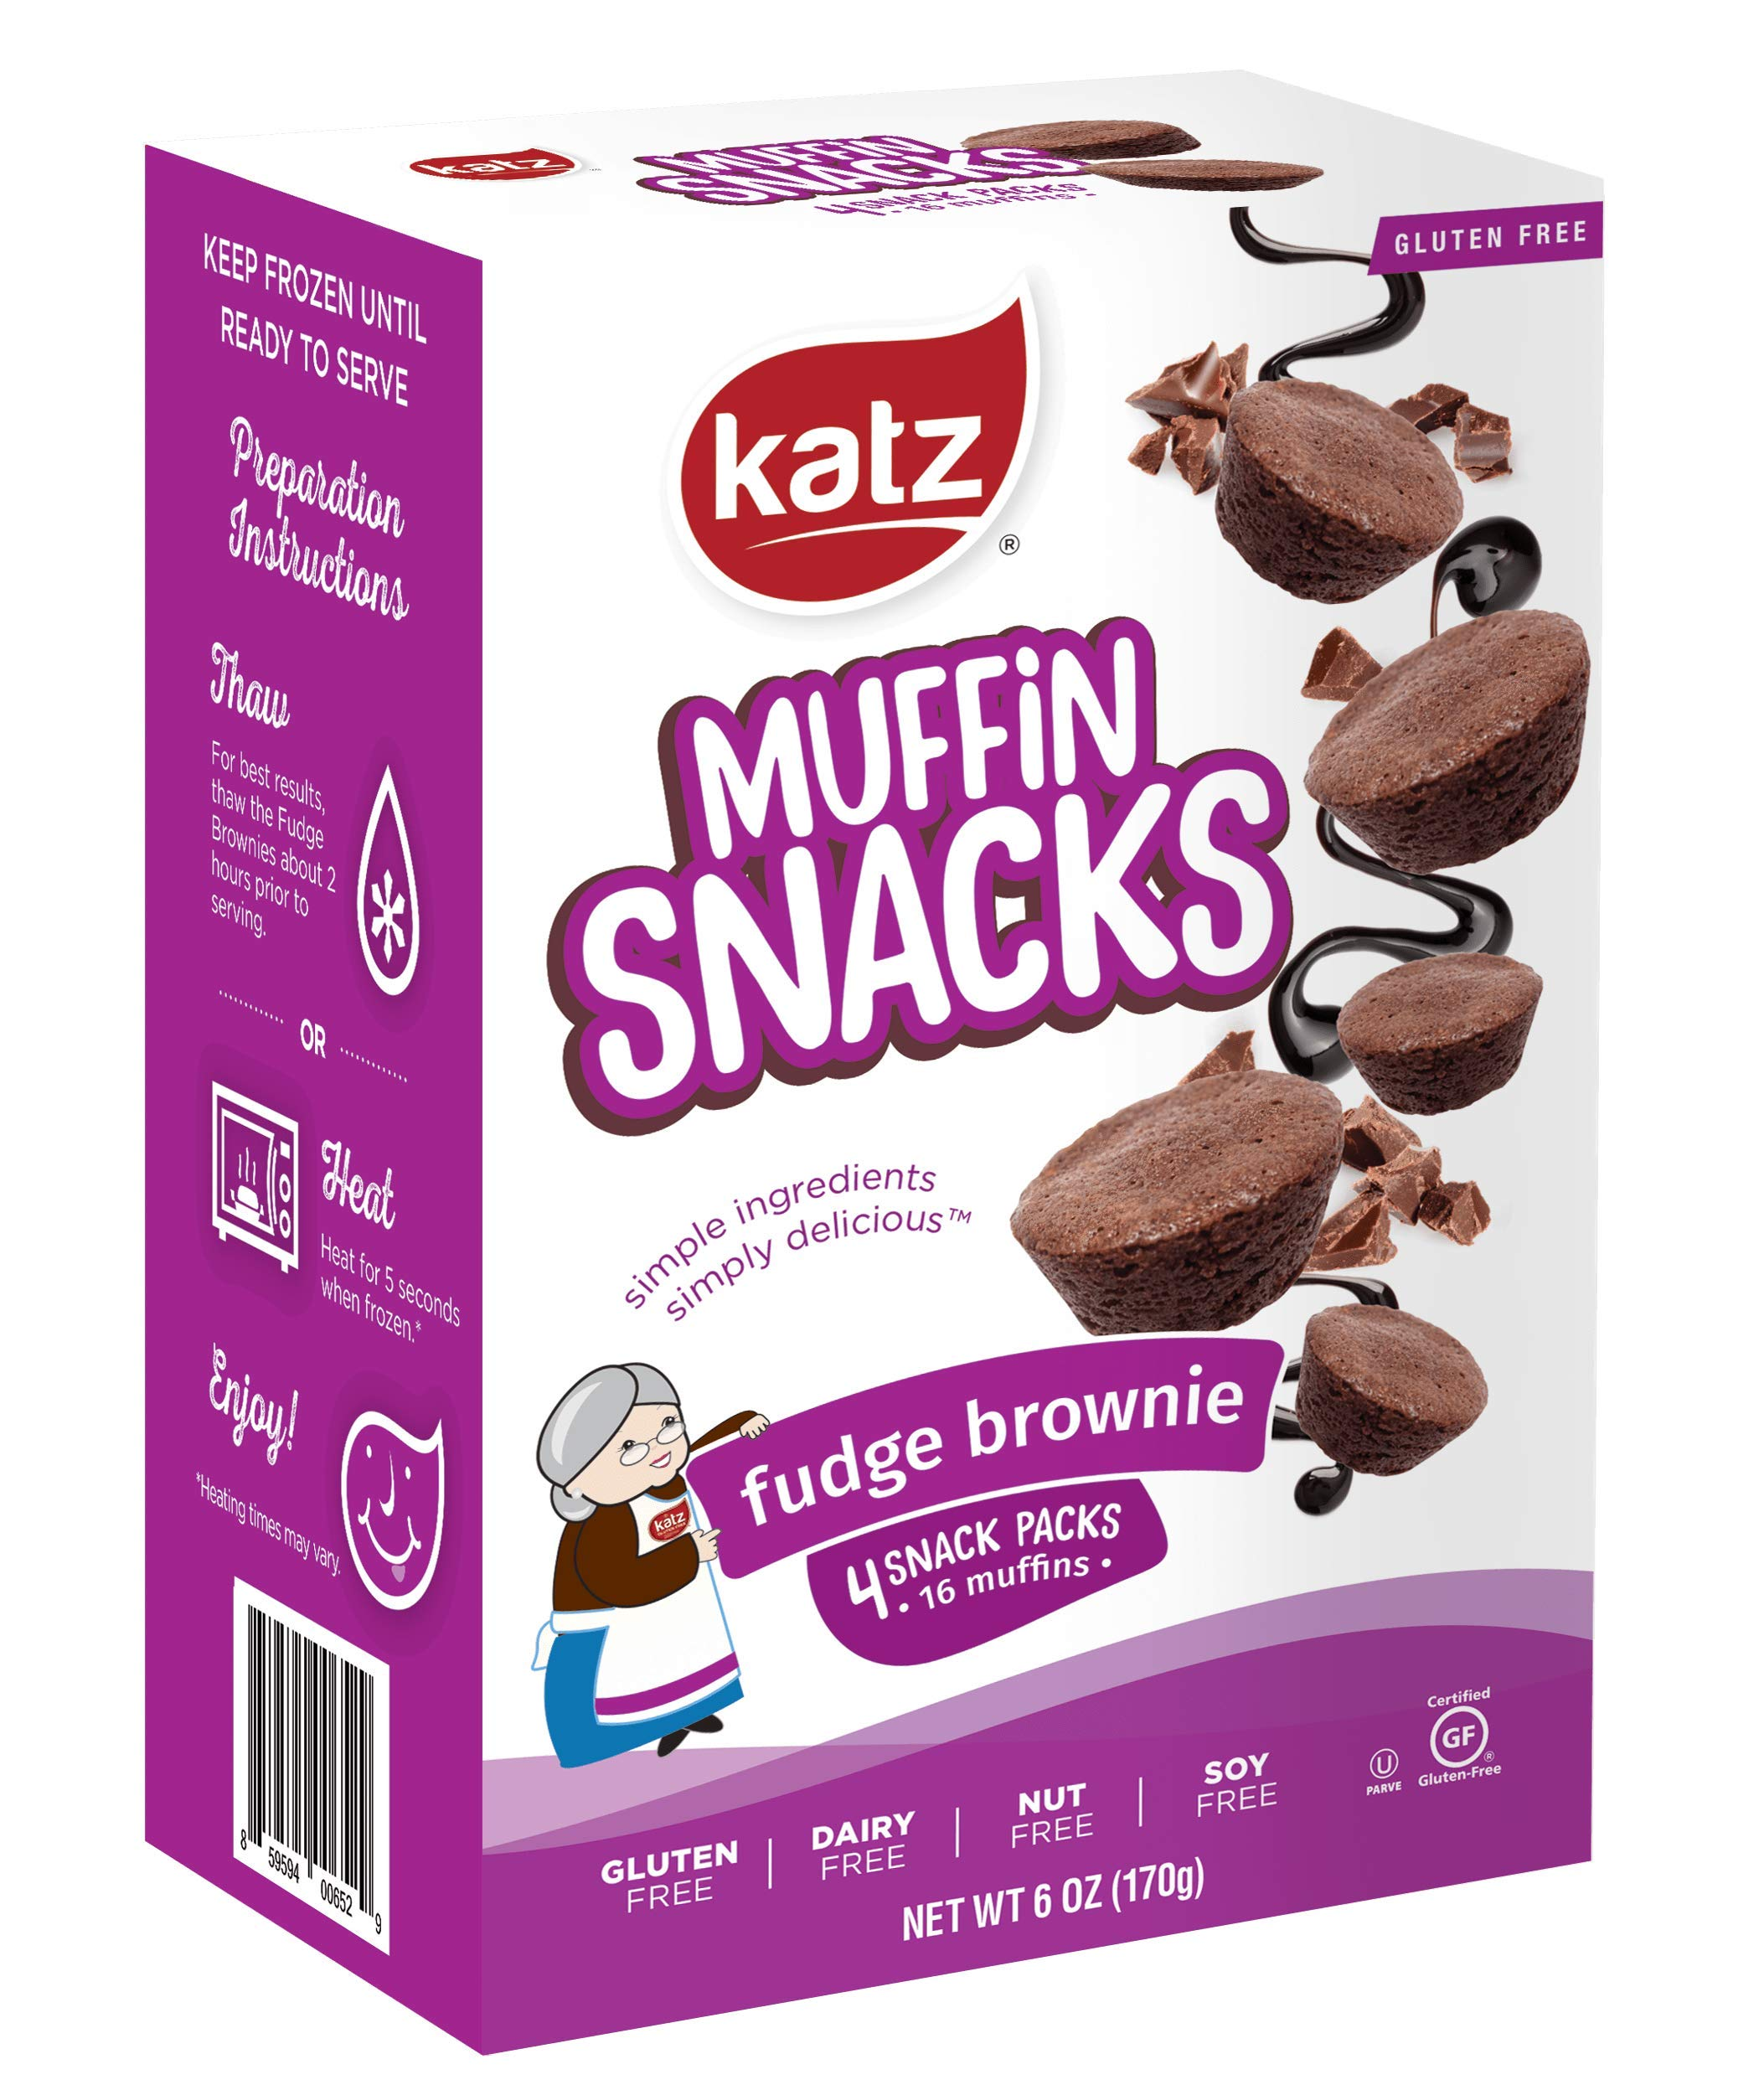 Katz Gluten Free Fudge Brownie Muffin Snacks | Dairy, Nut, Soy and Gluten Free | Kosher (6 Packs, 6 Ounce Each) by Katz Gluten Free